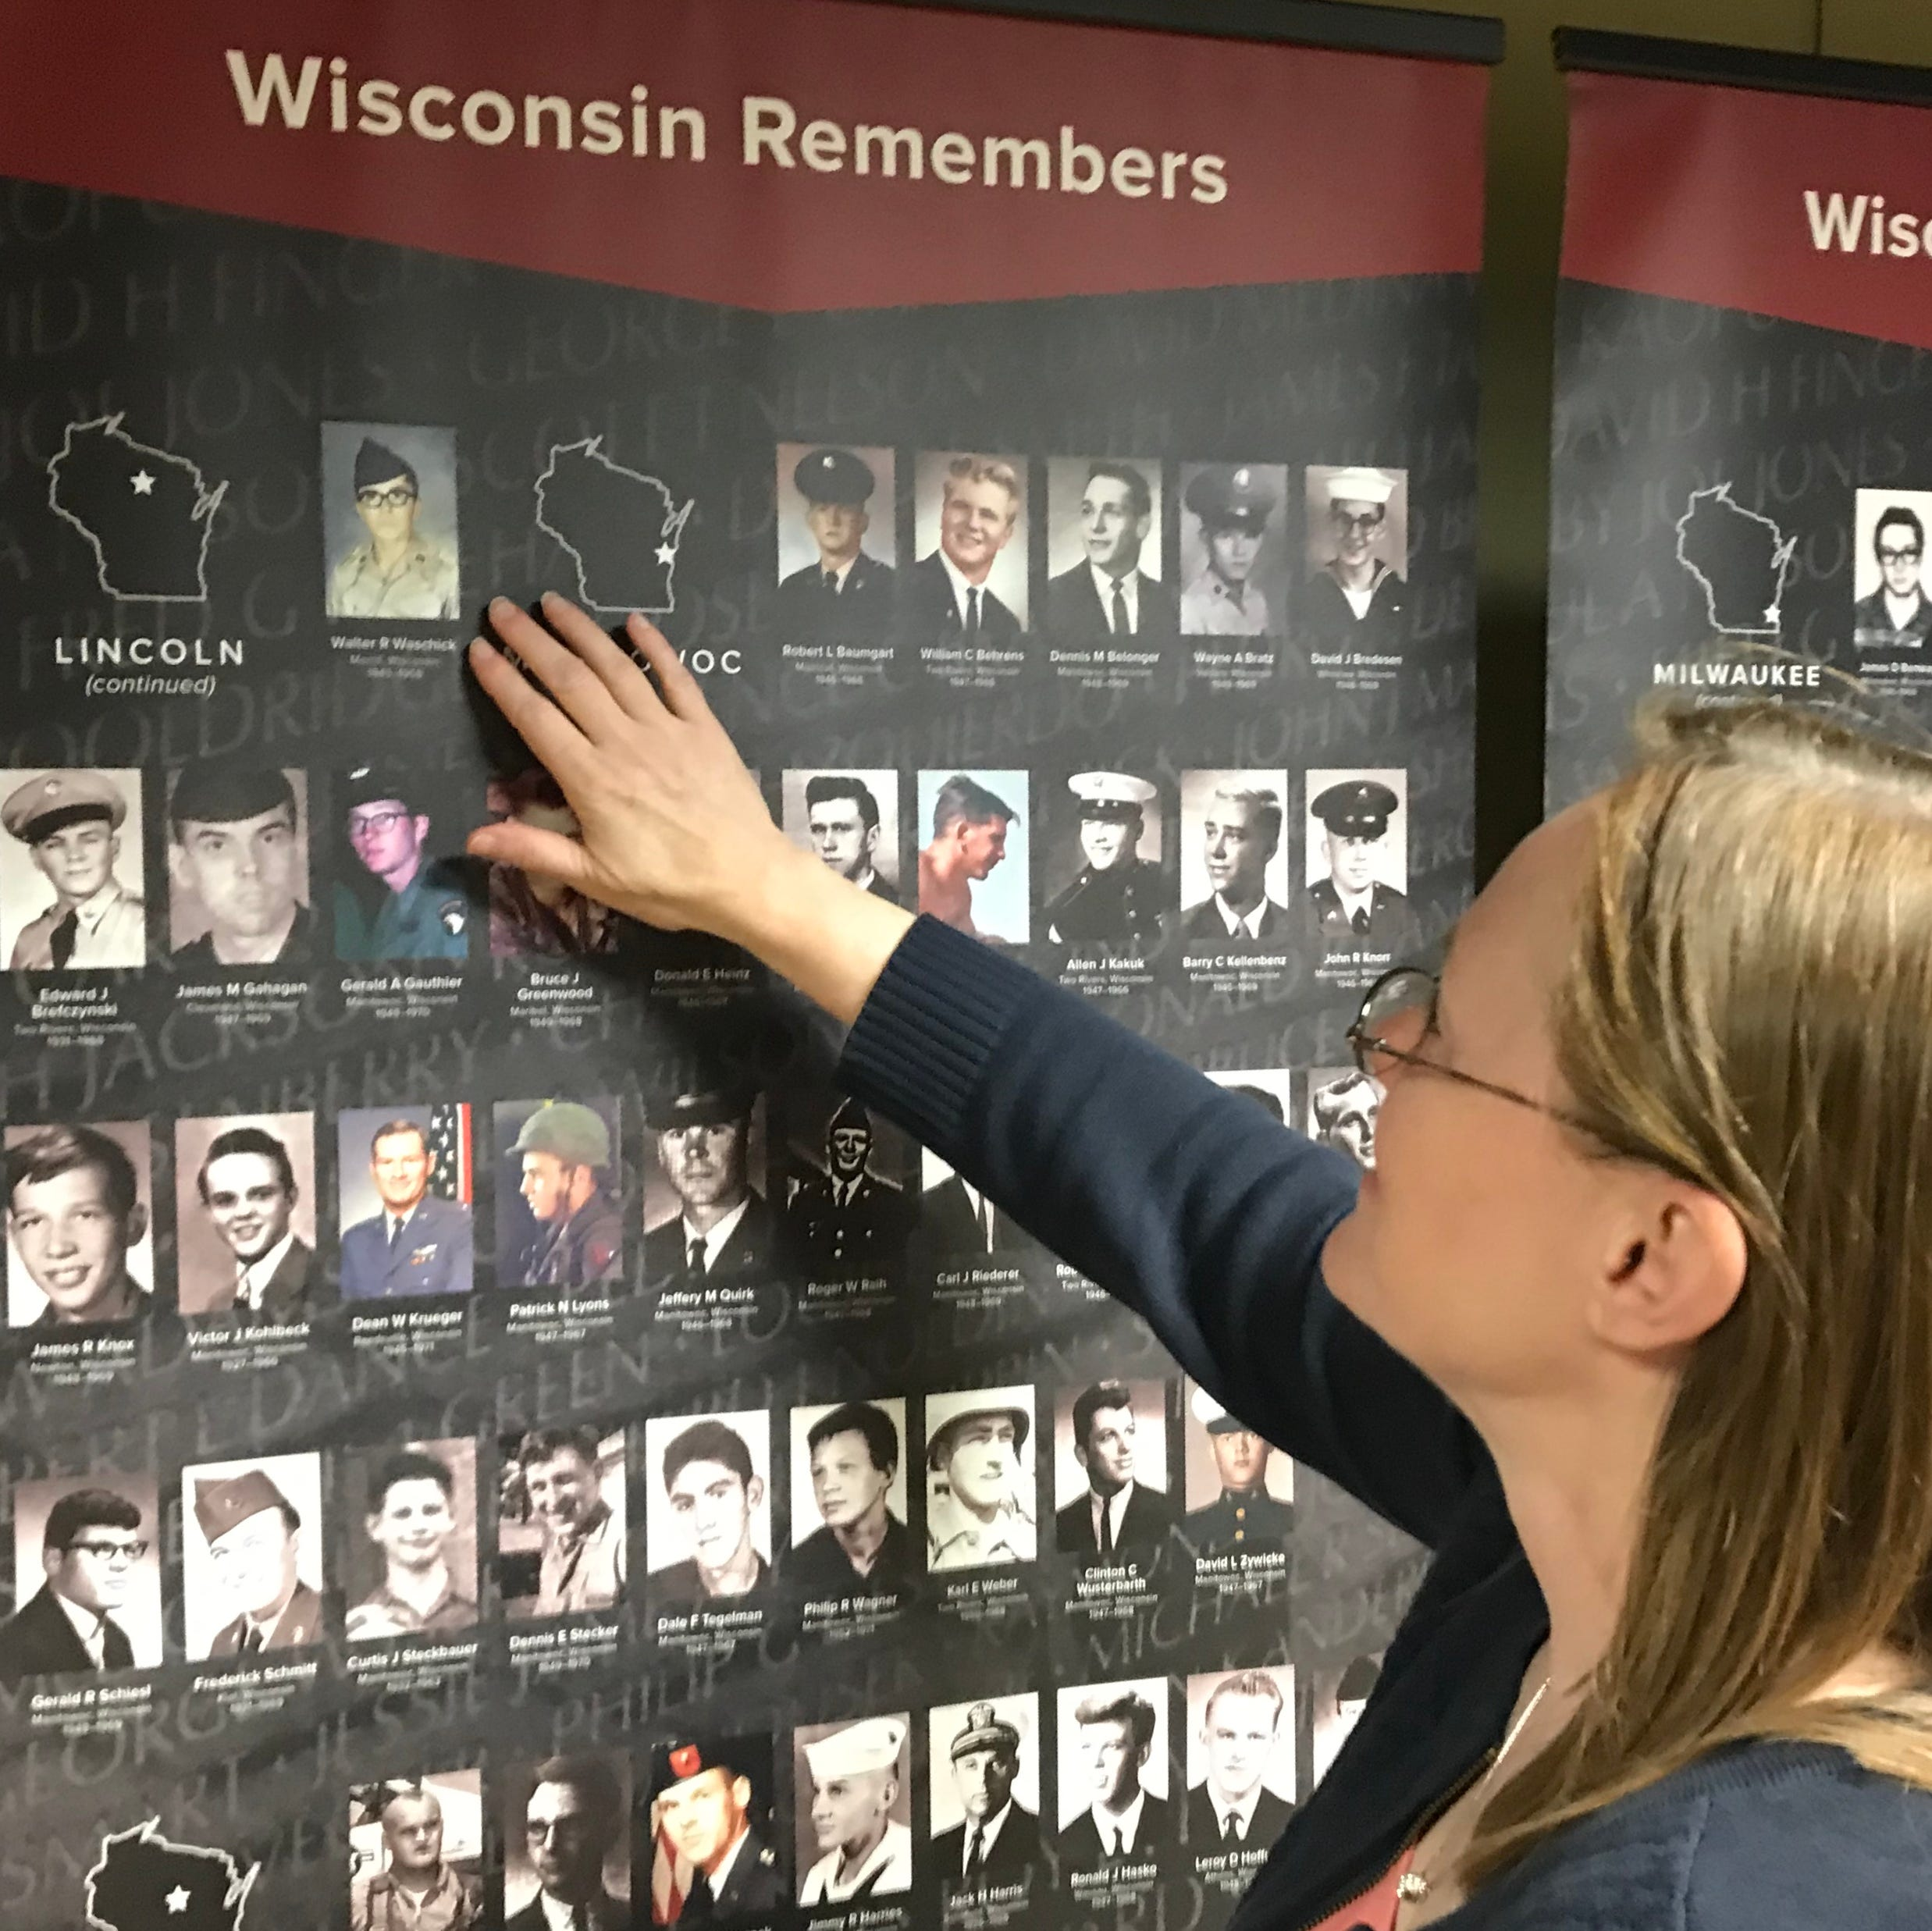 'Wisconsin Remembers': Photos tell the story of state's servicemen killed in Vietnam